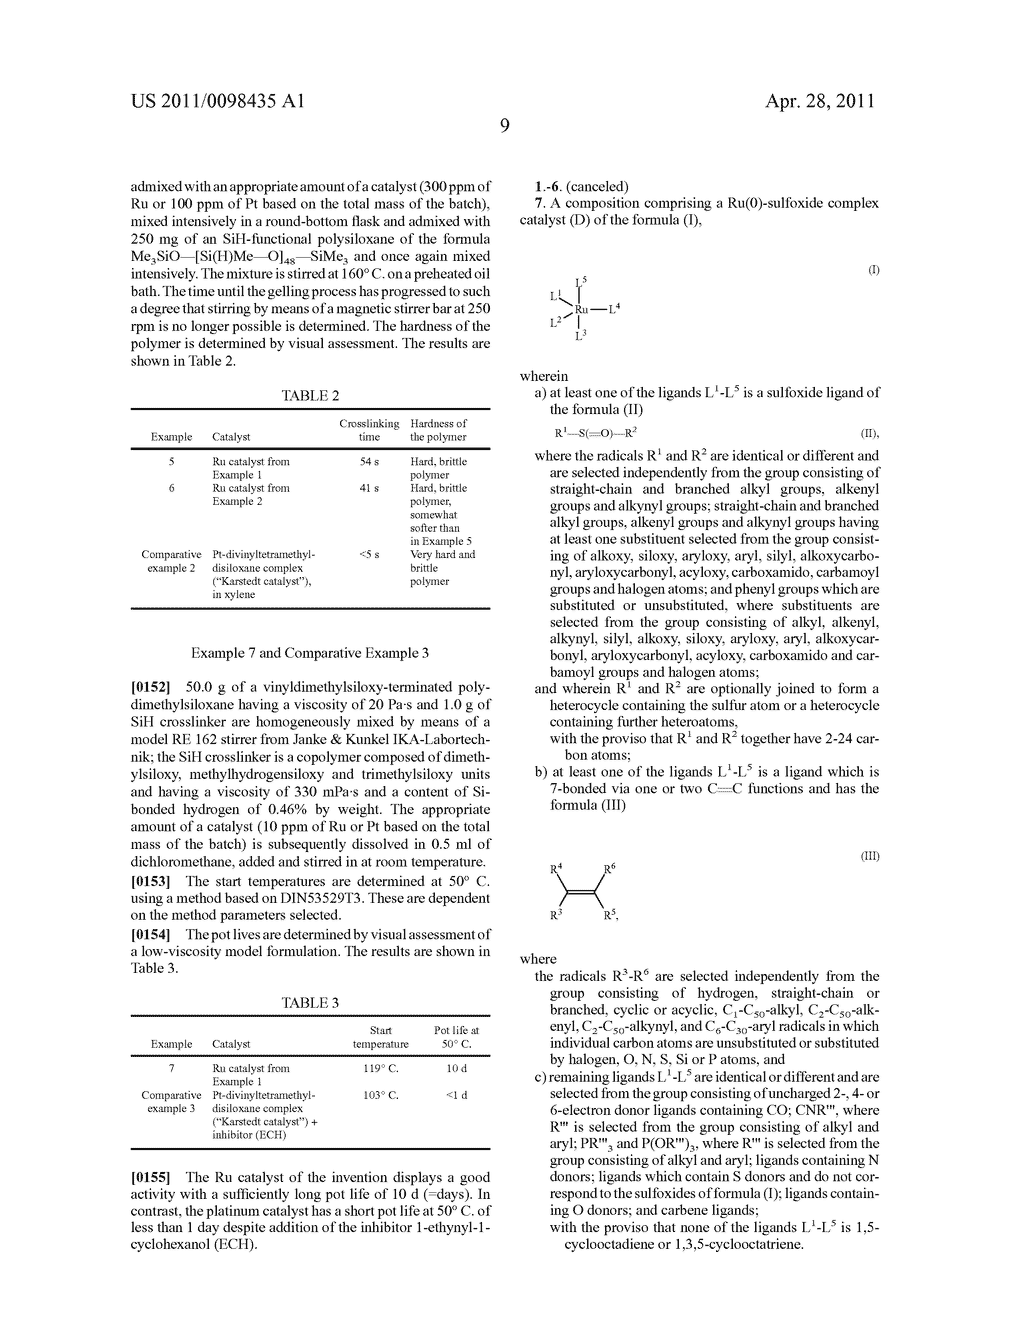 RU SULFOXIDE COMPLEXES, THEIR PREPARATION AND USE - diagram, schematic, and image 10